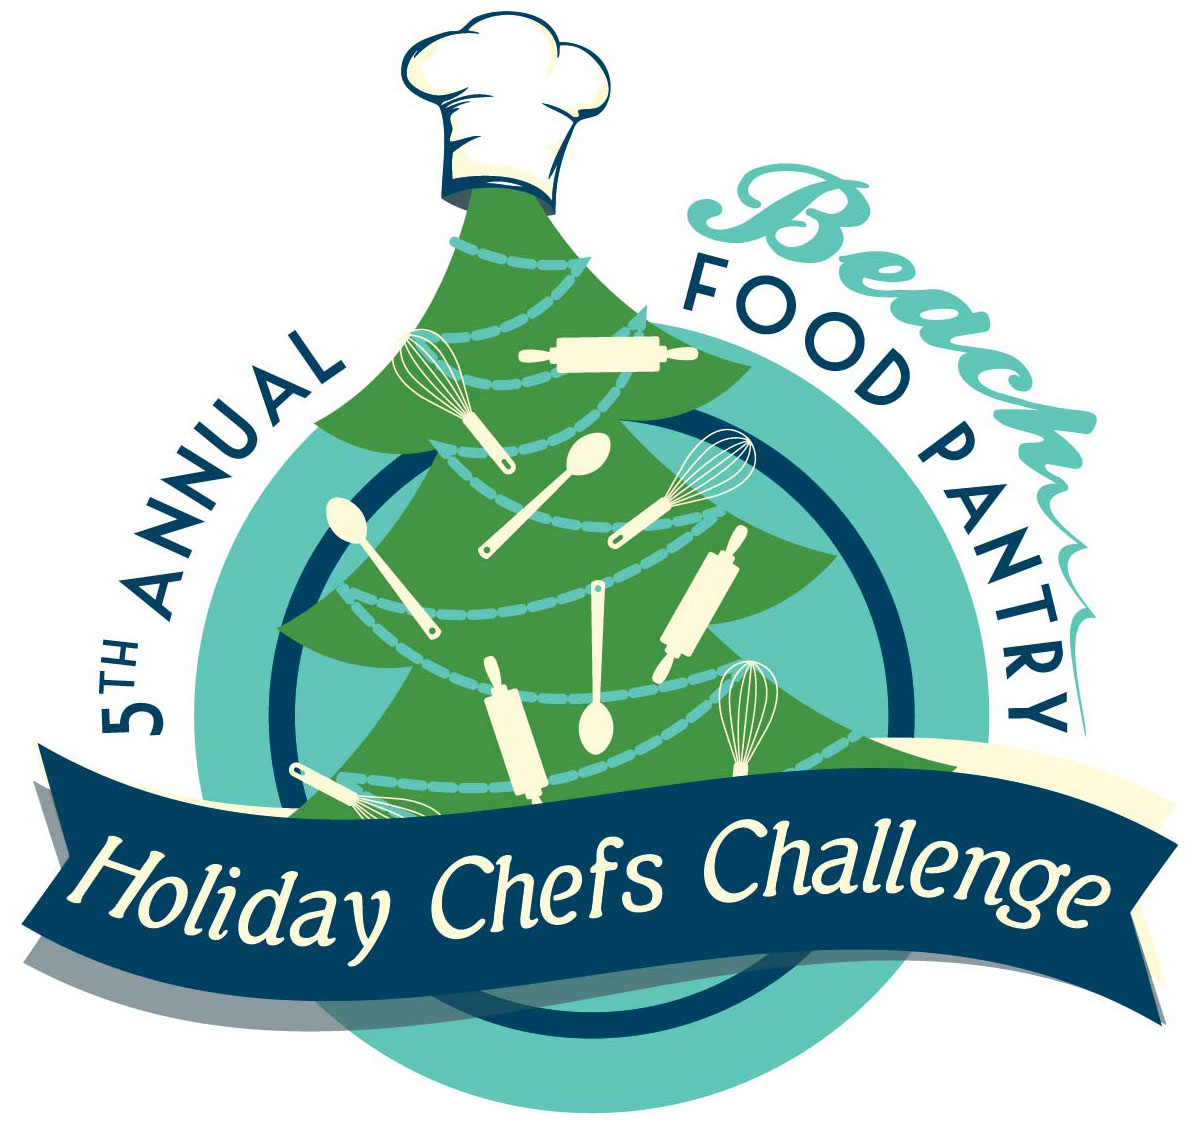 5th Annual Holiday Chefs Challenge Sponsored by Surf Pediatrics and Medicine